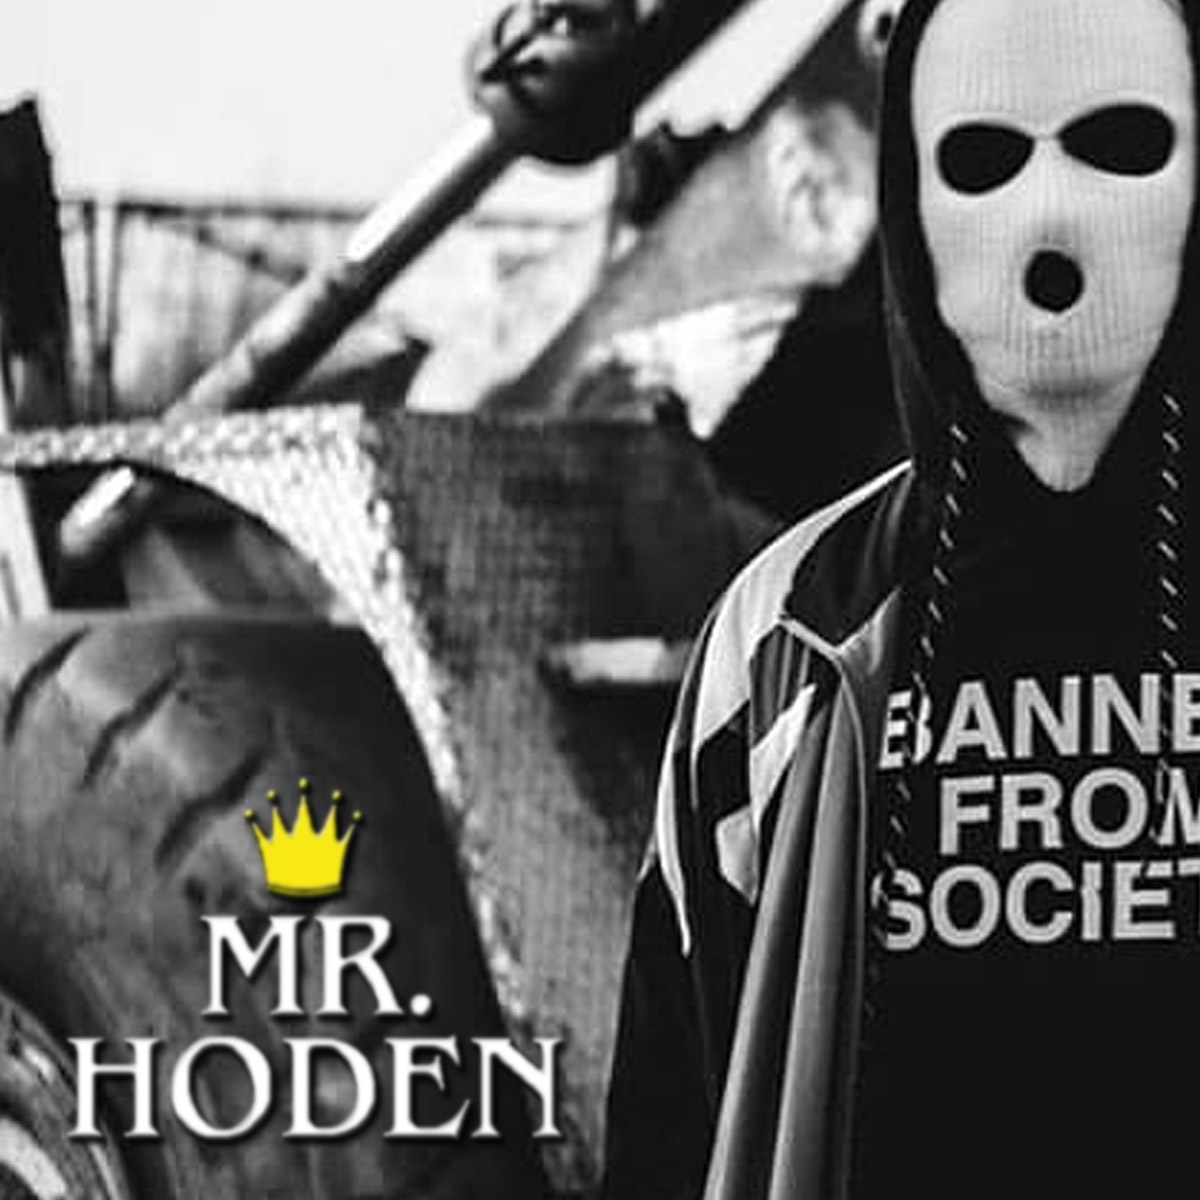 Upcoming: Mr. Hoden - Dark Banger Rap Beat 2019 [FREE BEAT]